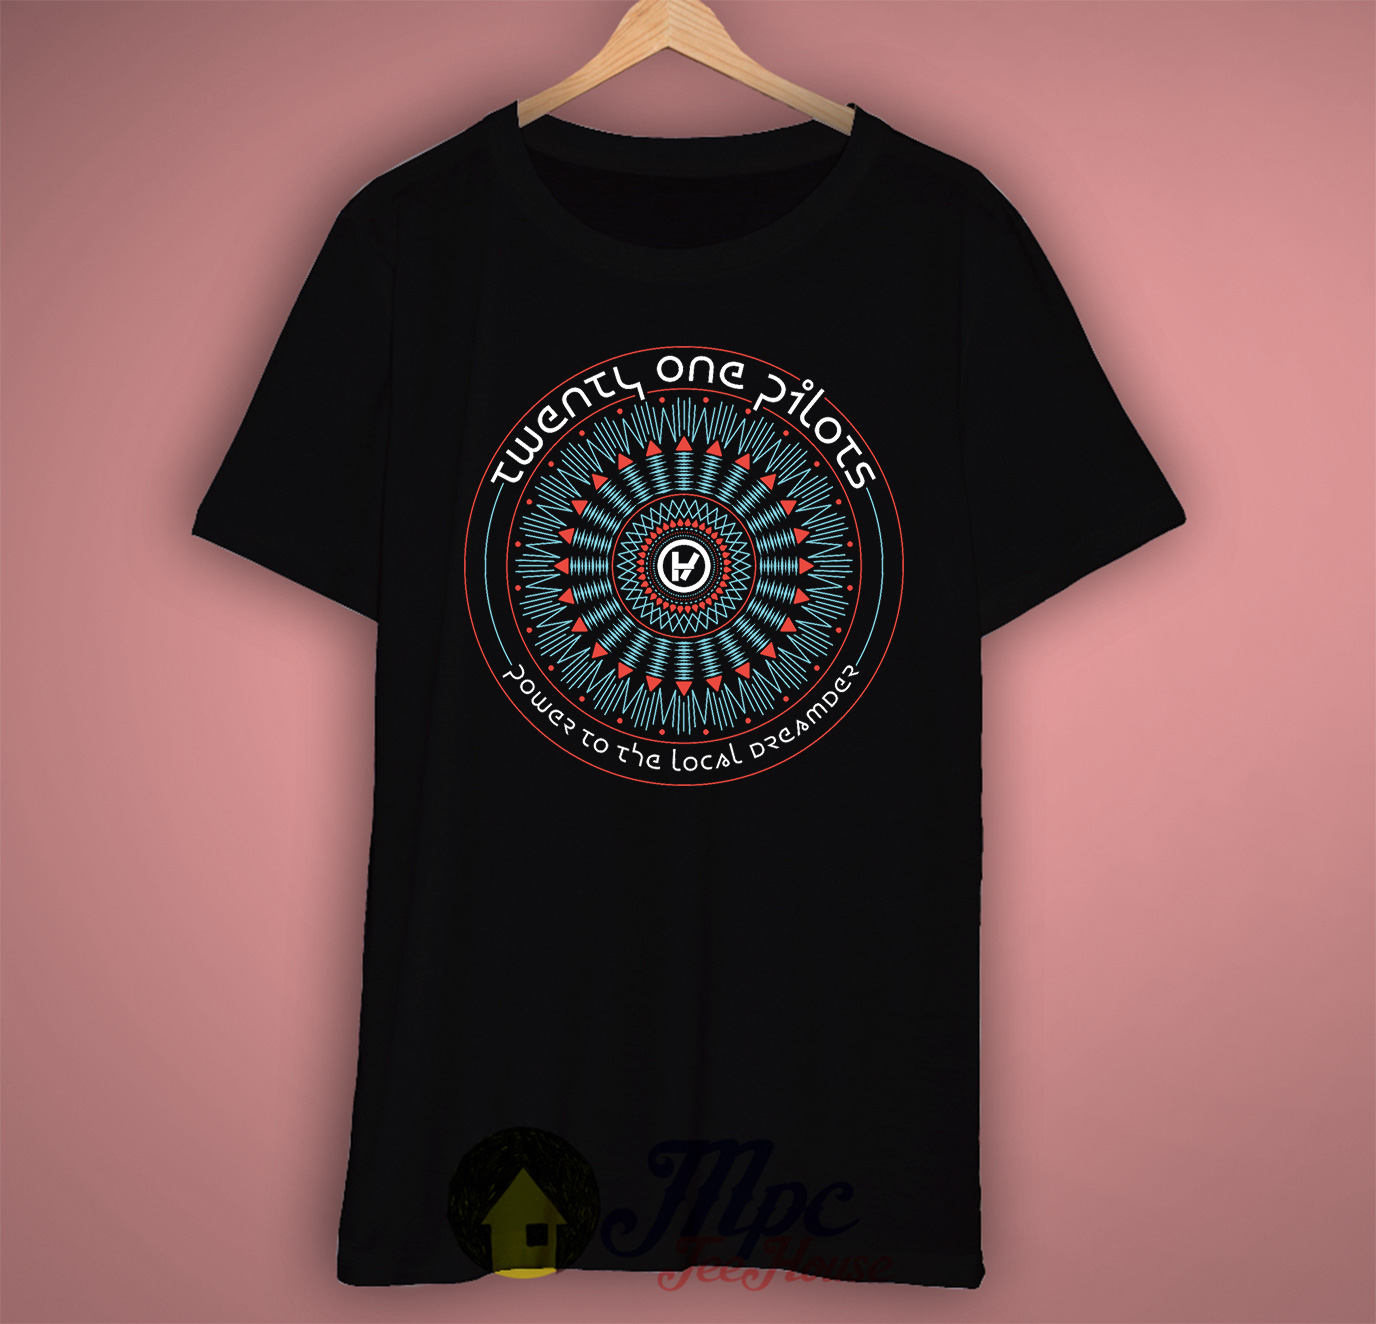 21 Pilots Power The Local Dream T Shirt Mpcteehouse 80s Tees